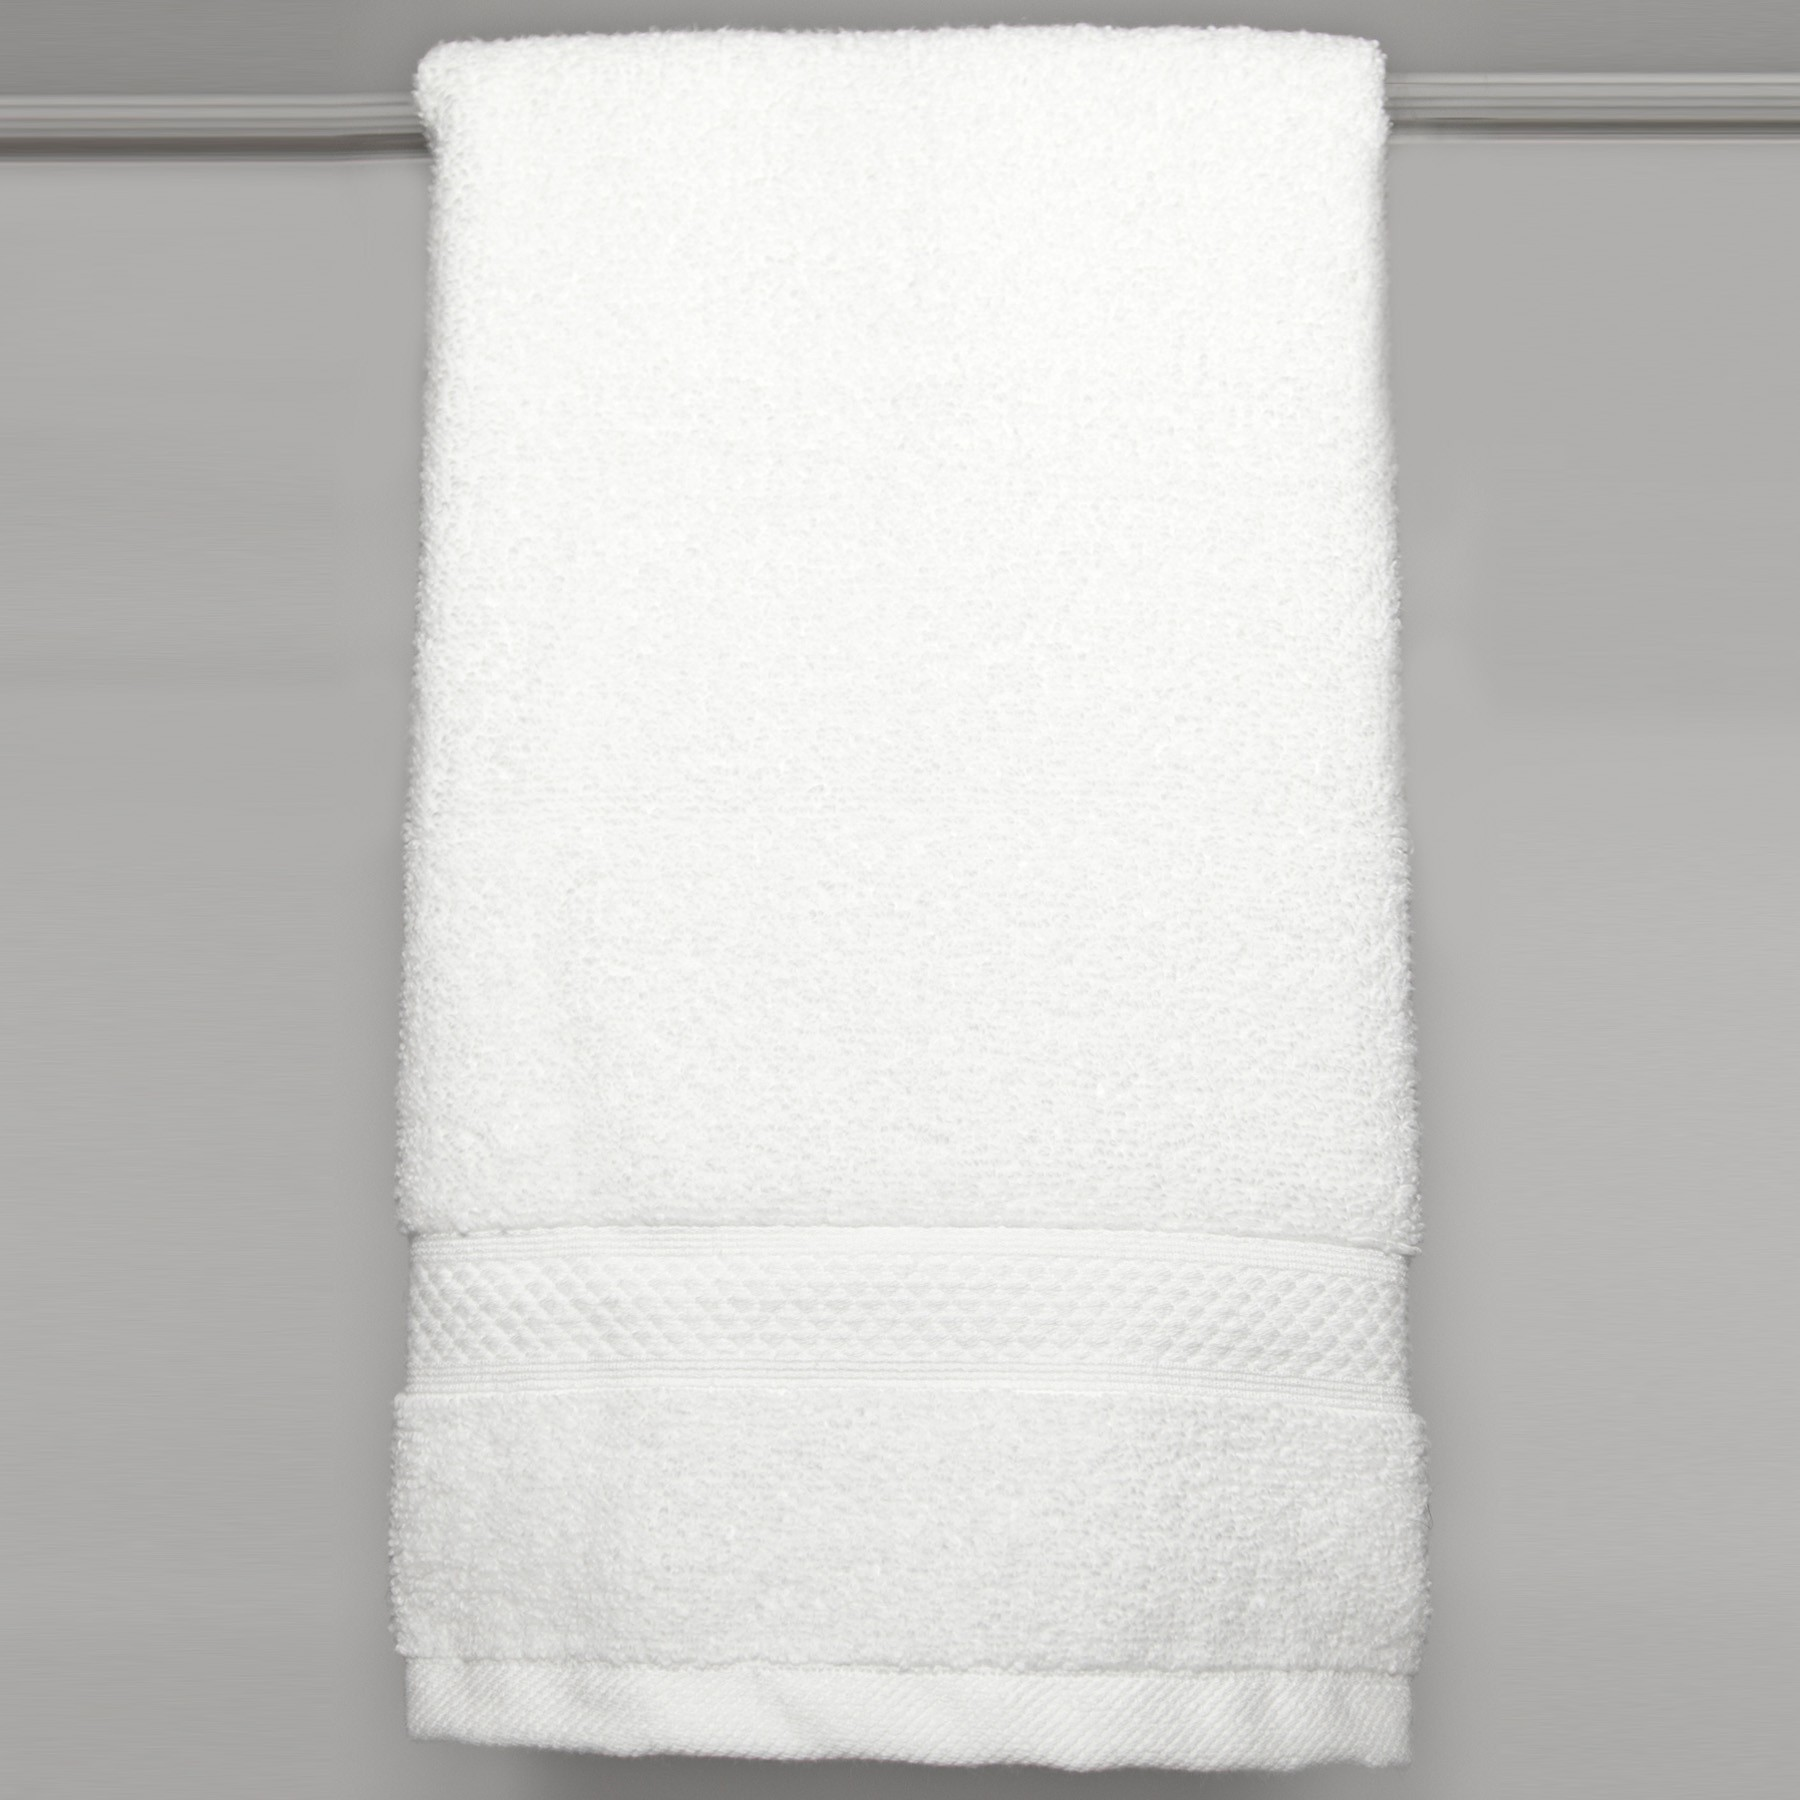 Hand towel premier hotel supplies for Bathroom hand towels